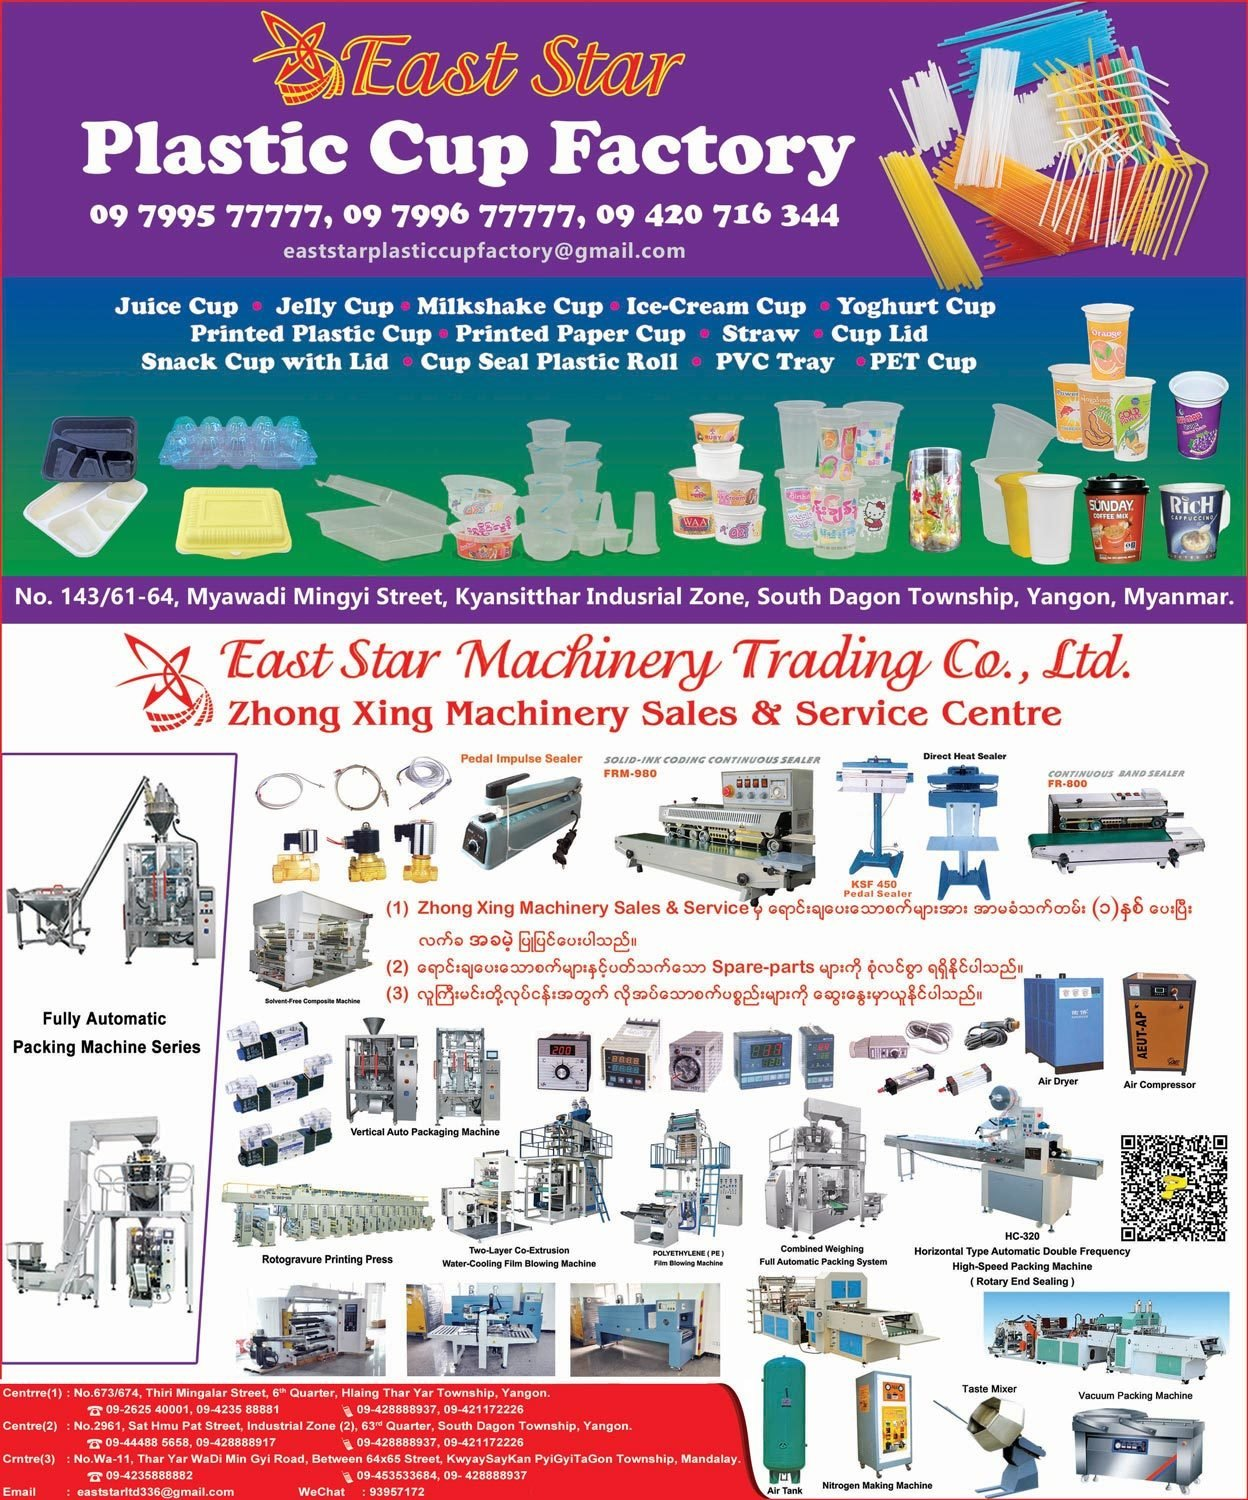 East-Star-Machinery-Trading-Co-Ltd_Machinery-&-Spare-Parts-Dealers_(B)_1058.jpg